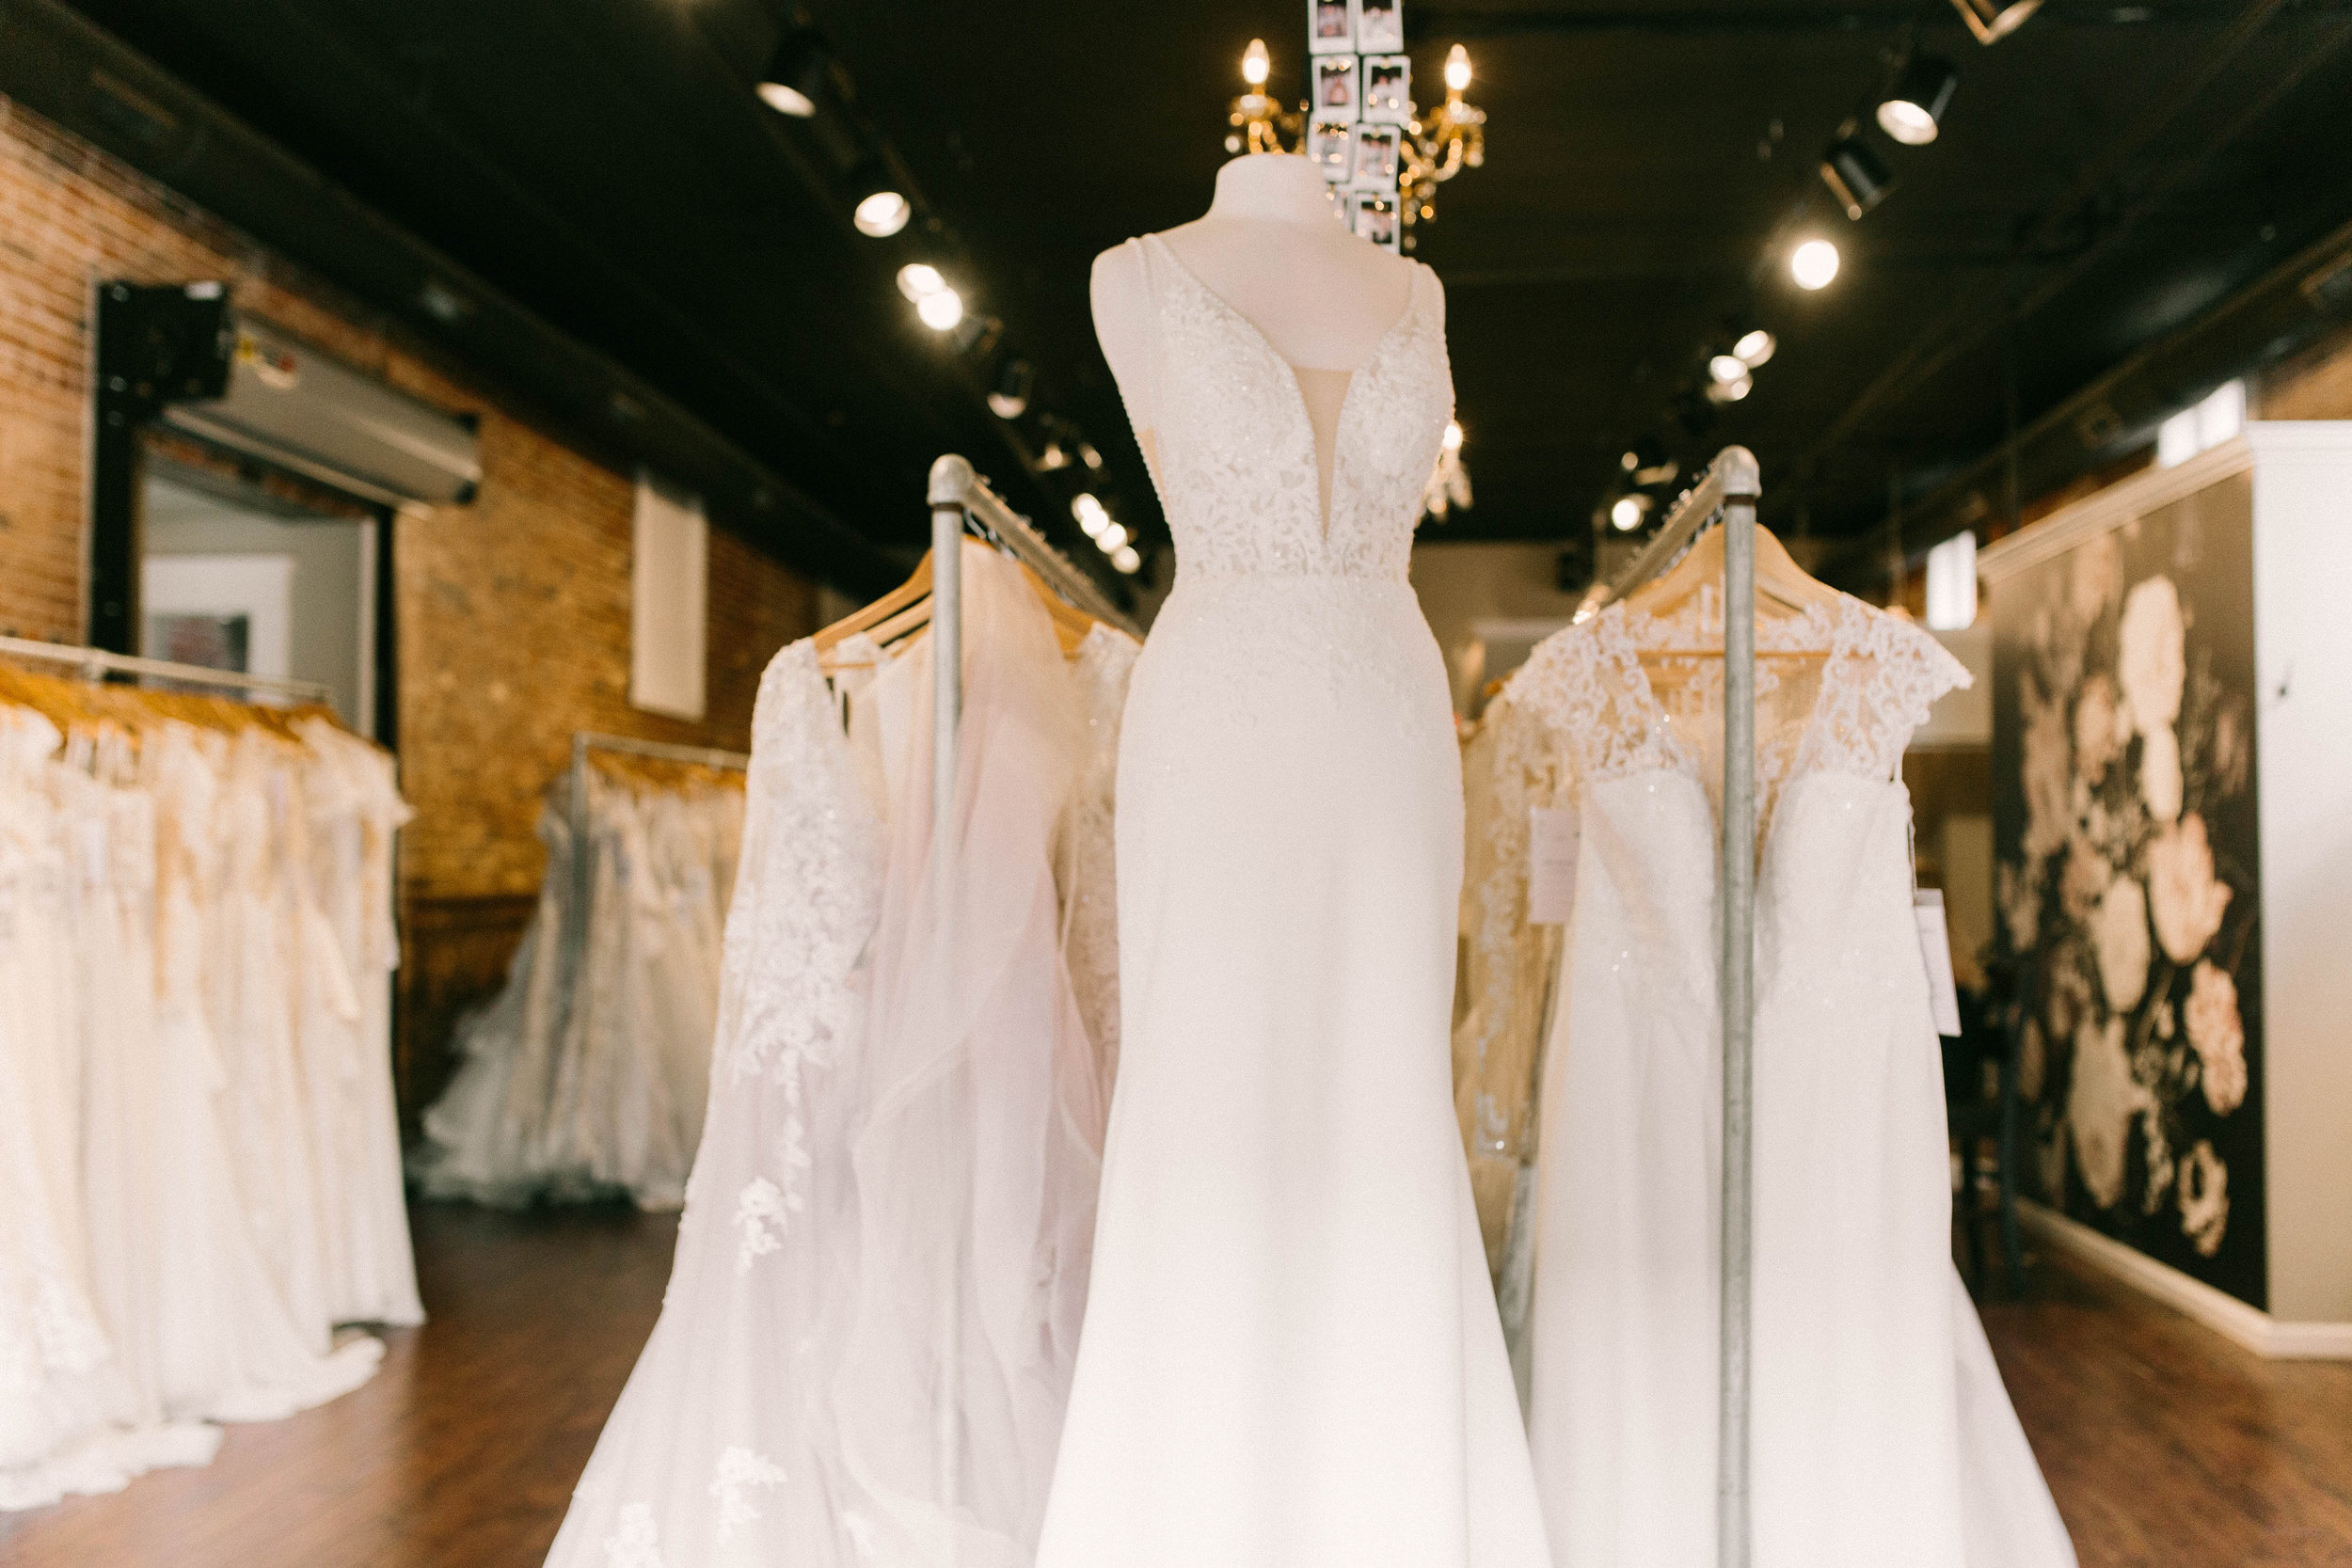 About White Traditions Bridal House — White Traditions Bridal House